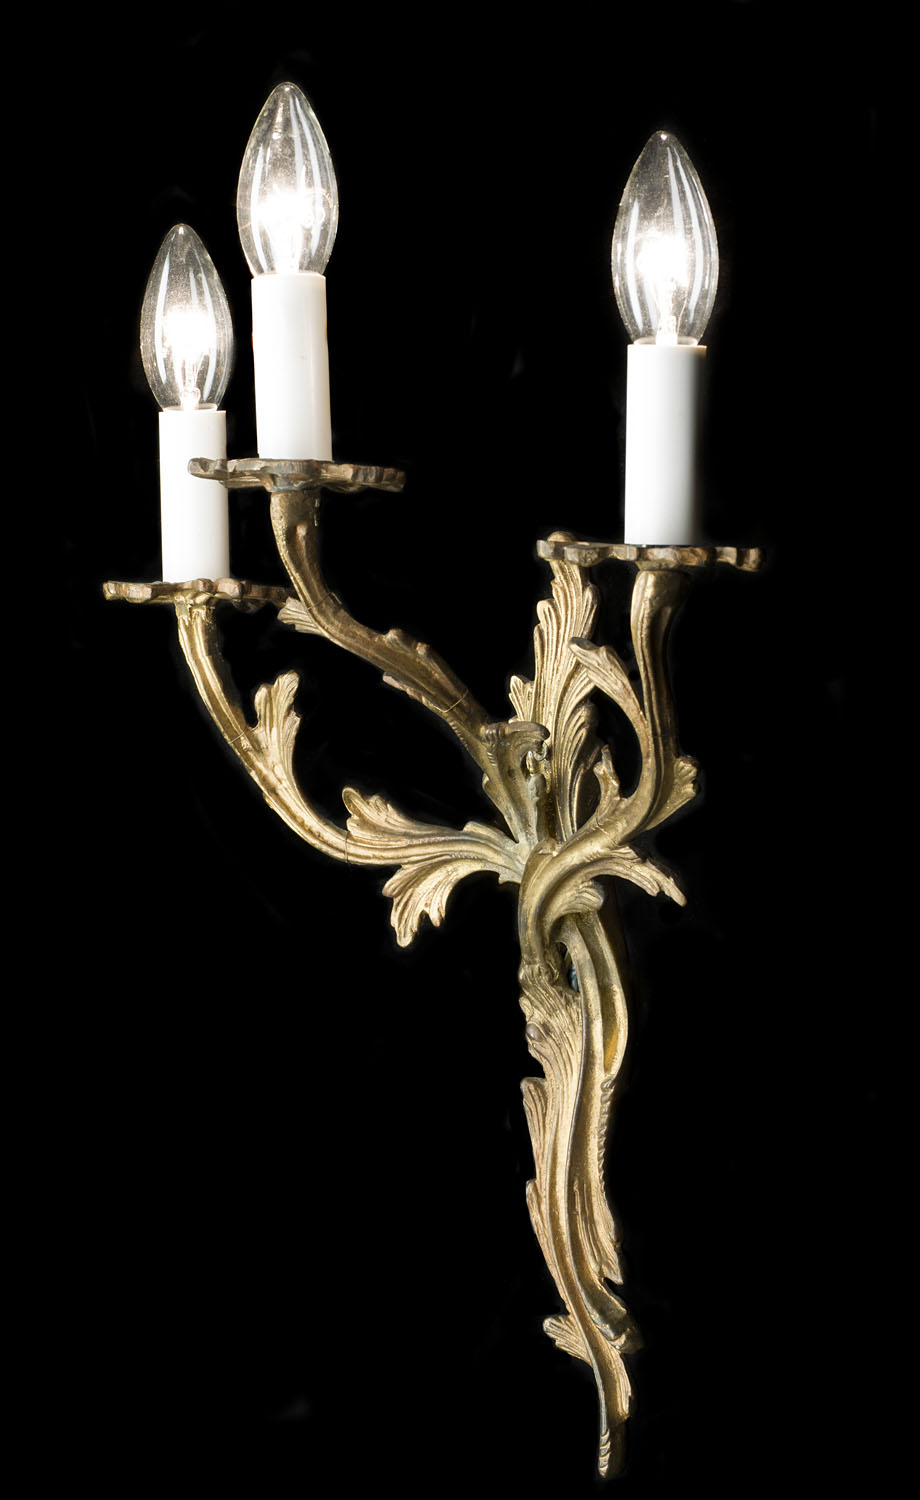 Pair of Rococo style 20th century triple branch wall lights